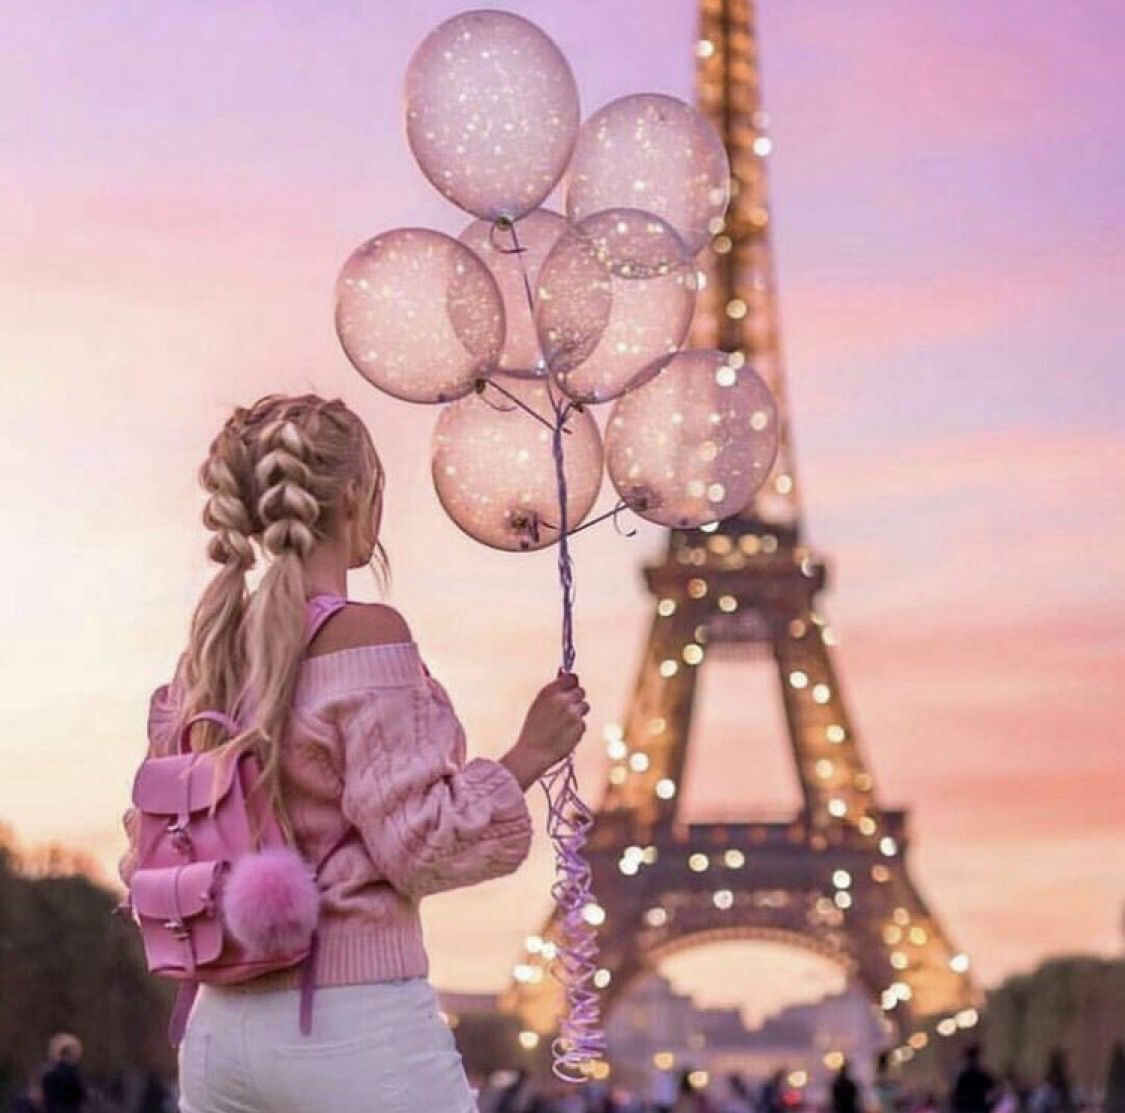 Girl In Paris Unicorn Wallpaper Cute Friend Poses Photography Girly Dp